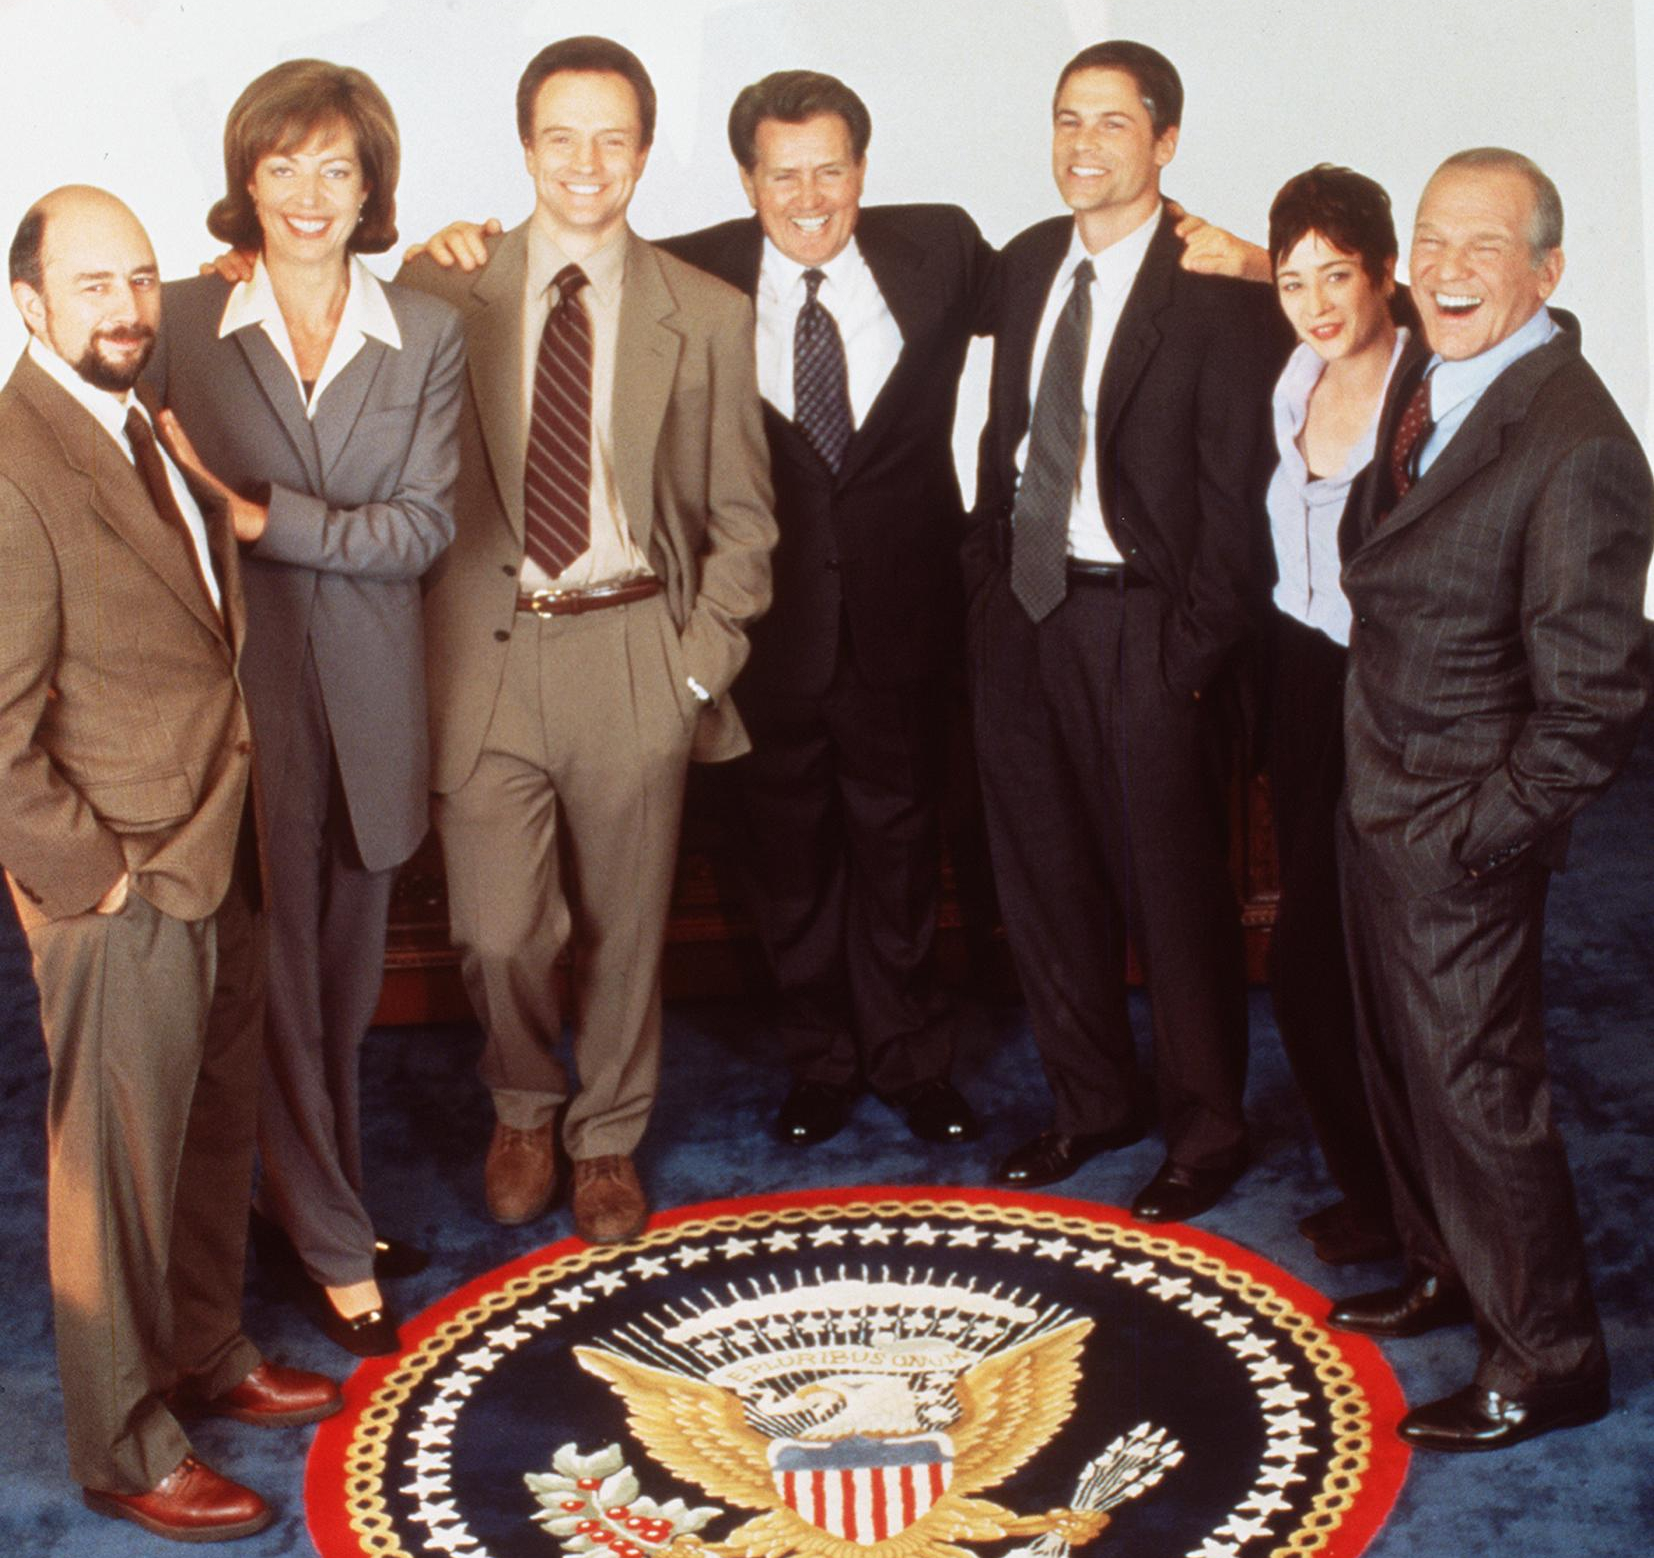 The West Wing facts